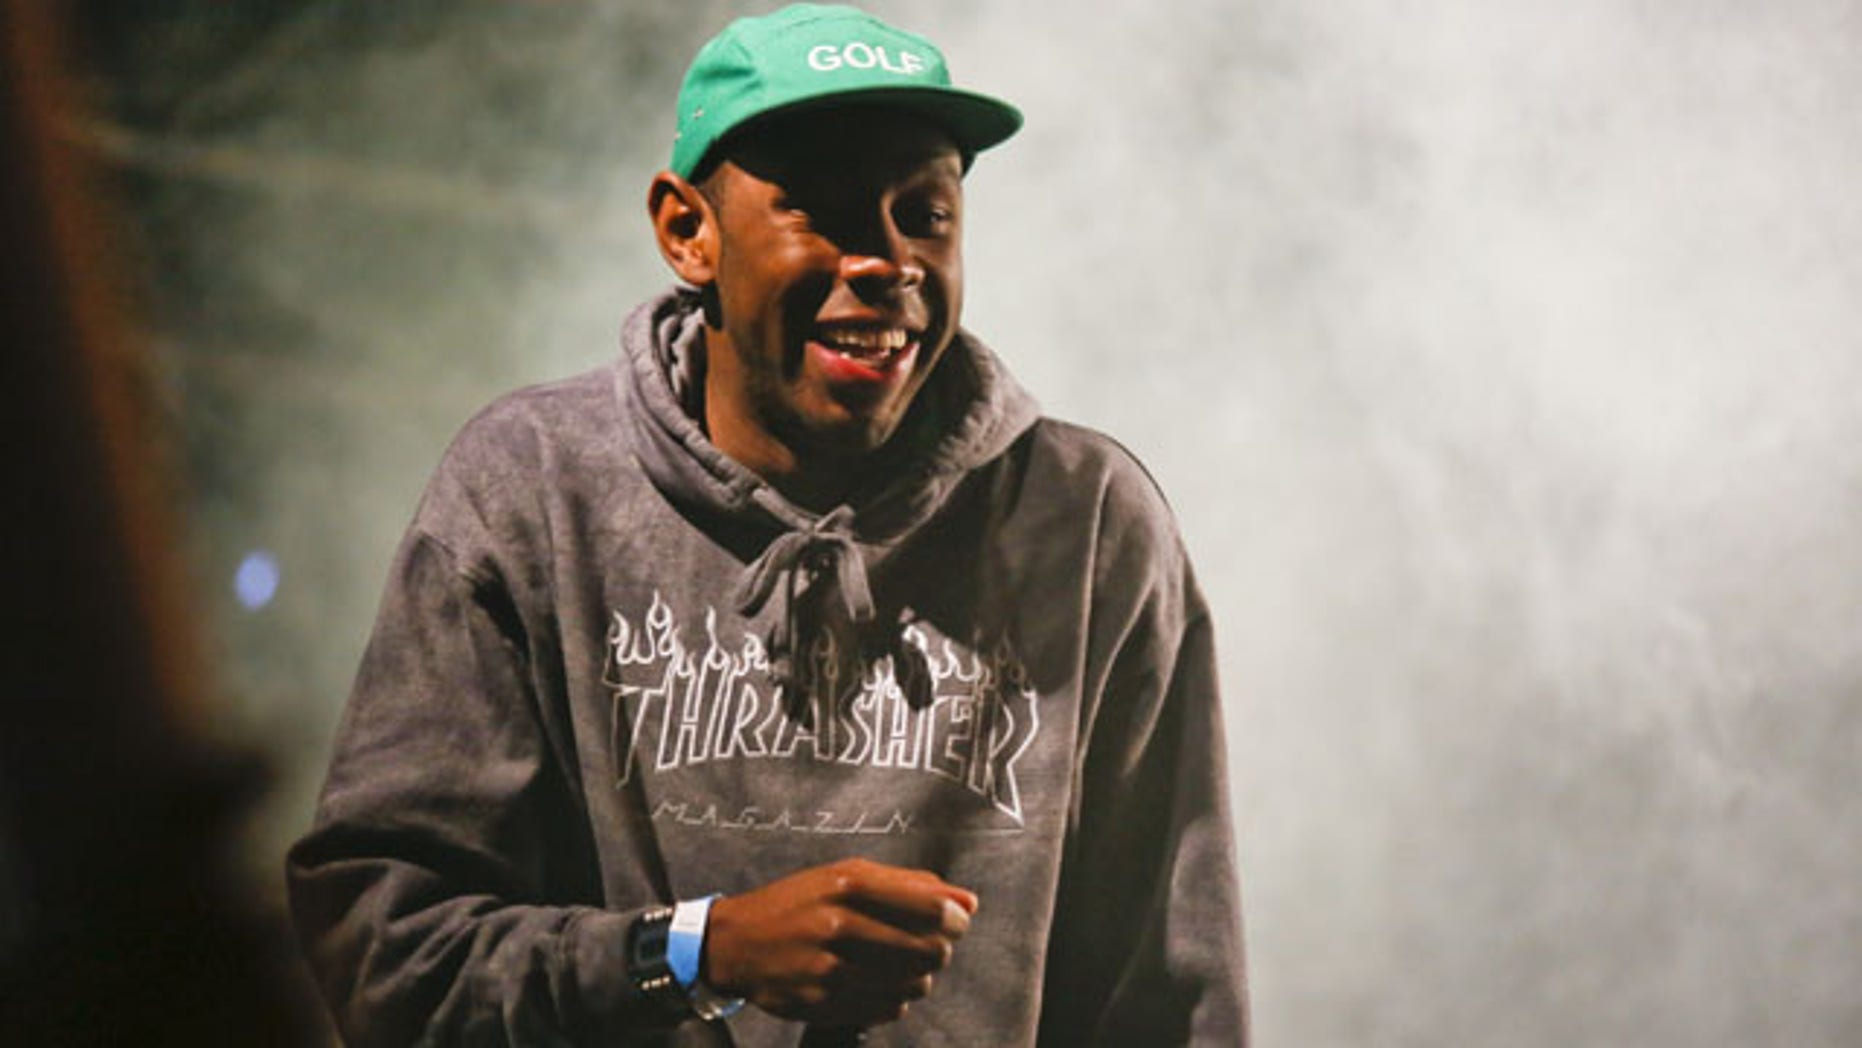 March 14, 2014: Tyler, The Creator performs during the SXSW Music Festival in Austin, Texas. (Photo by Jack Plunkett/Invision/AP)